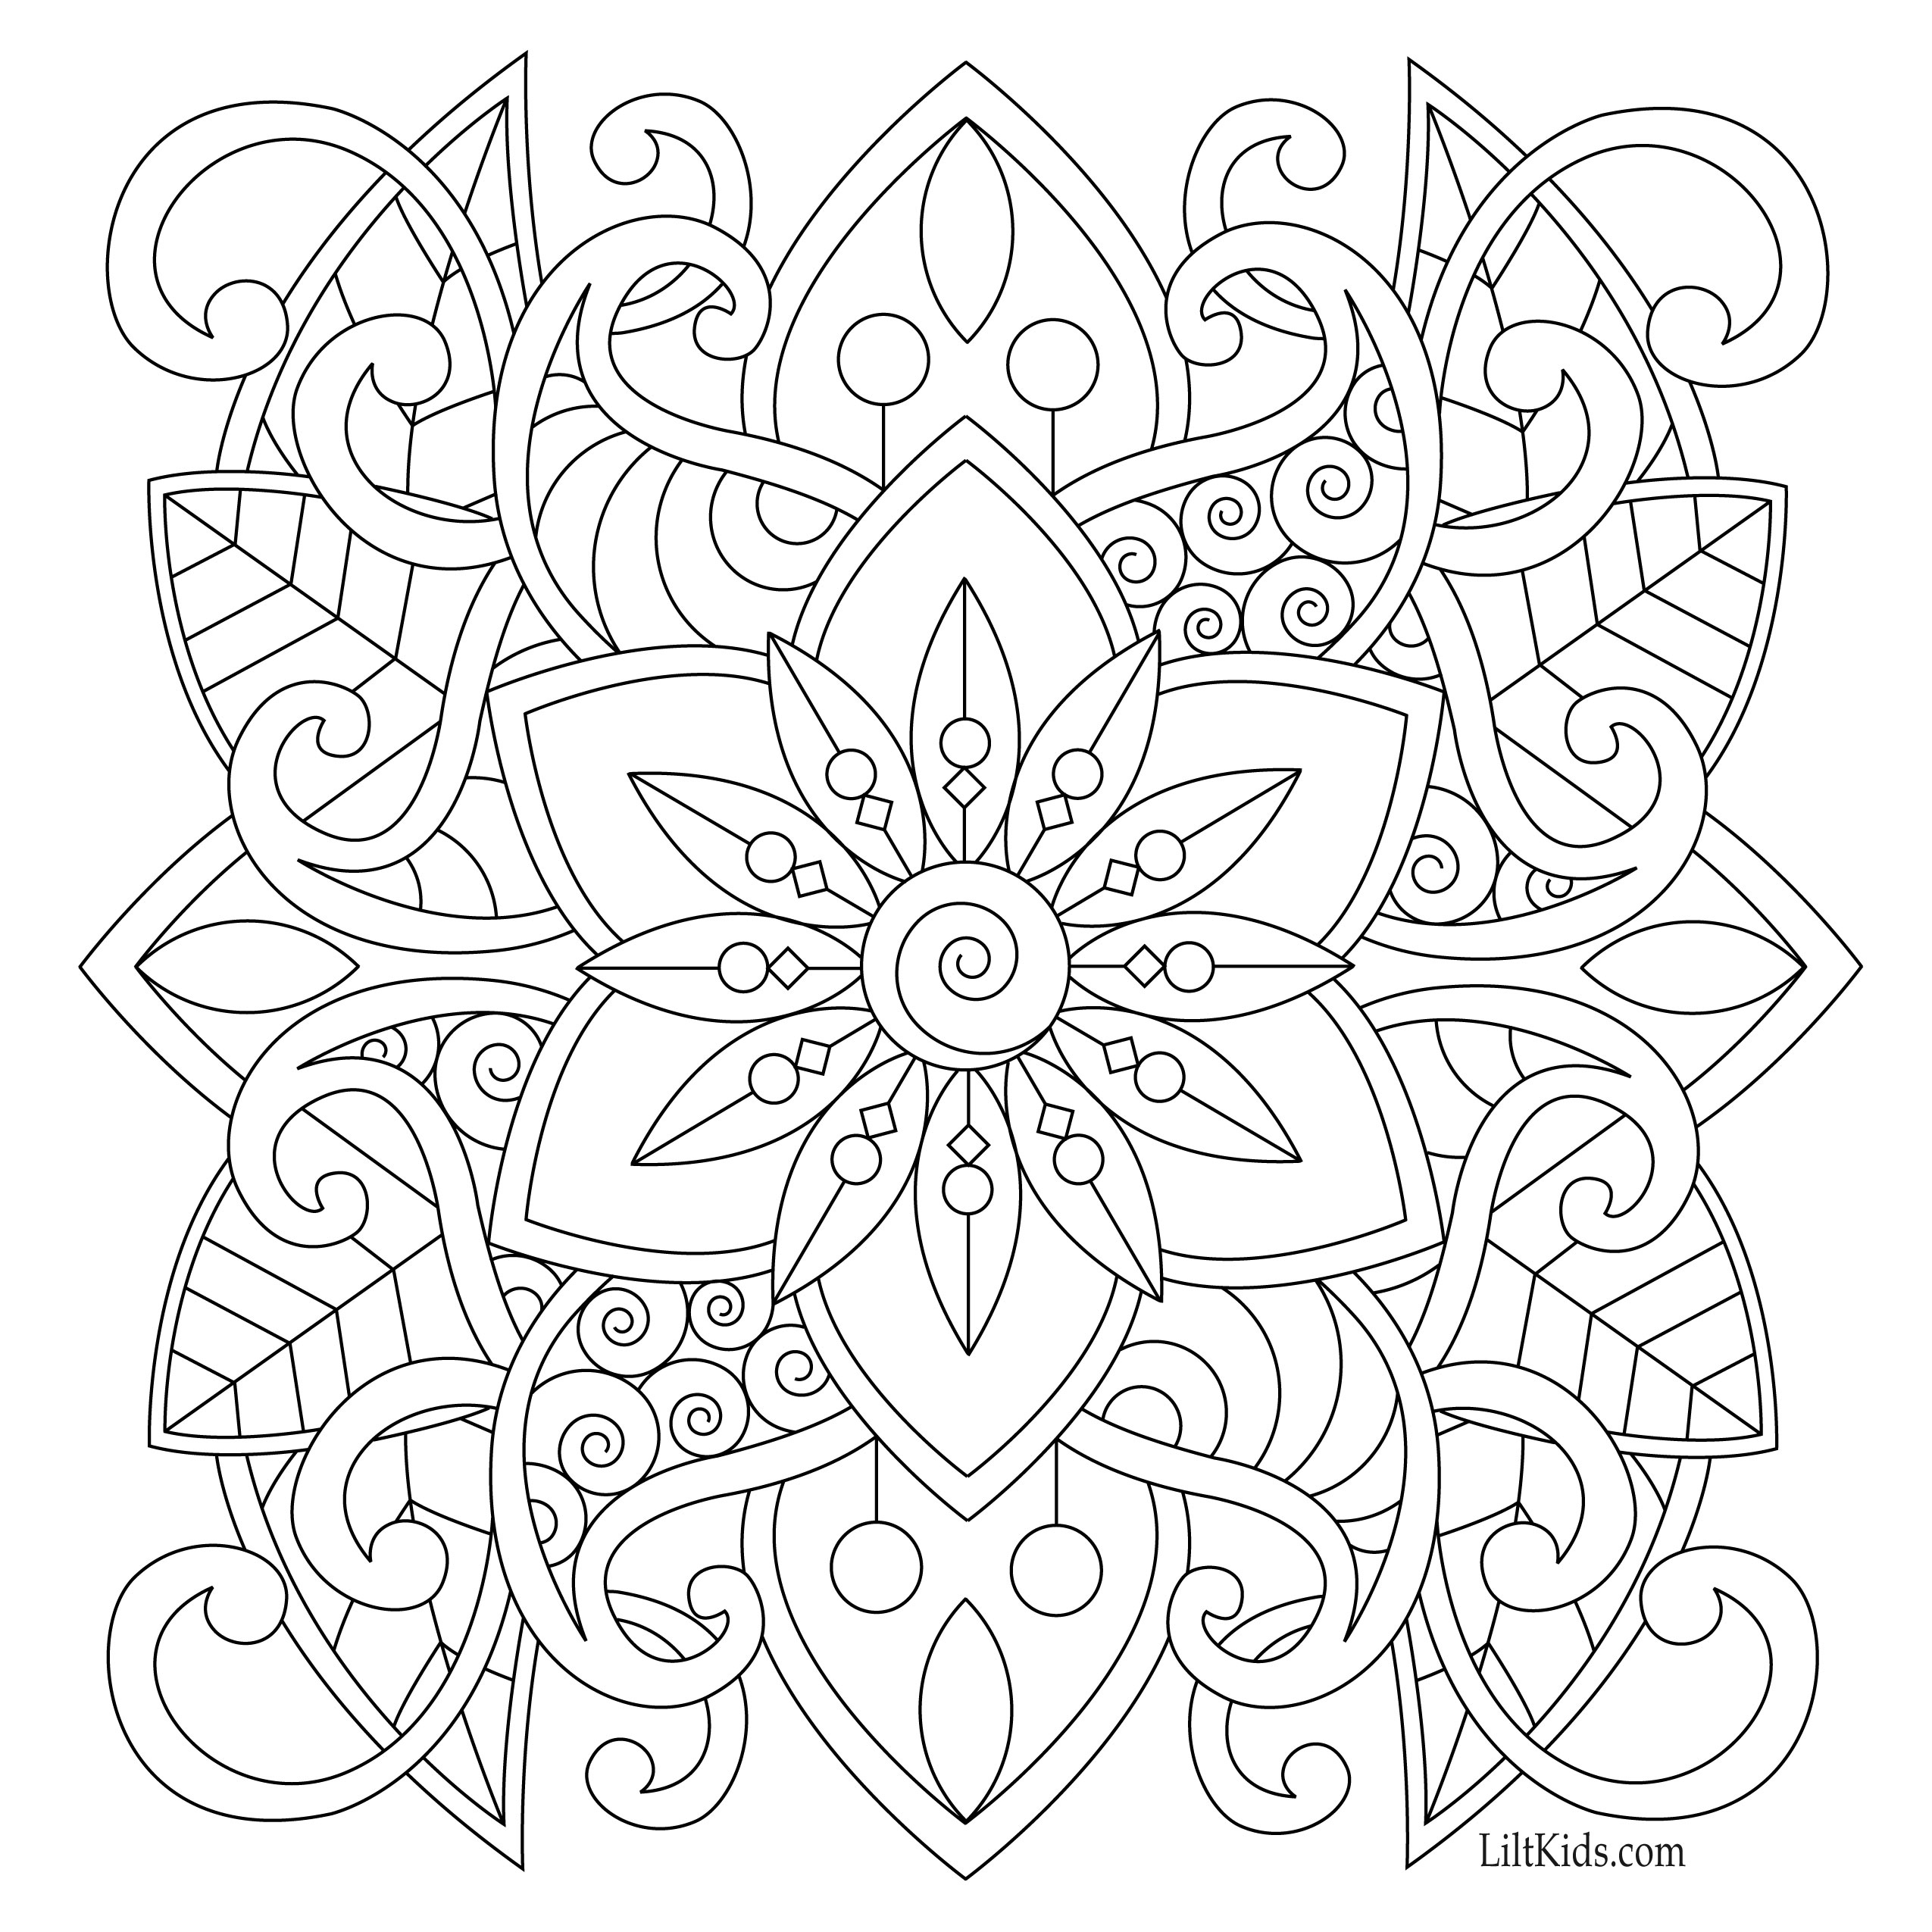 Lilt kids coloring books free adult coloring book pages Coloring books for adults free